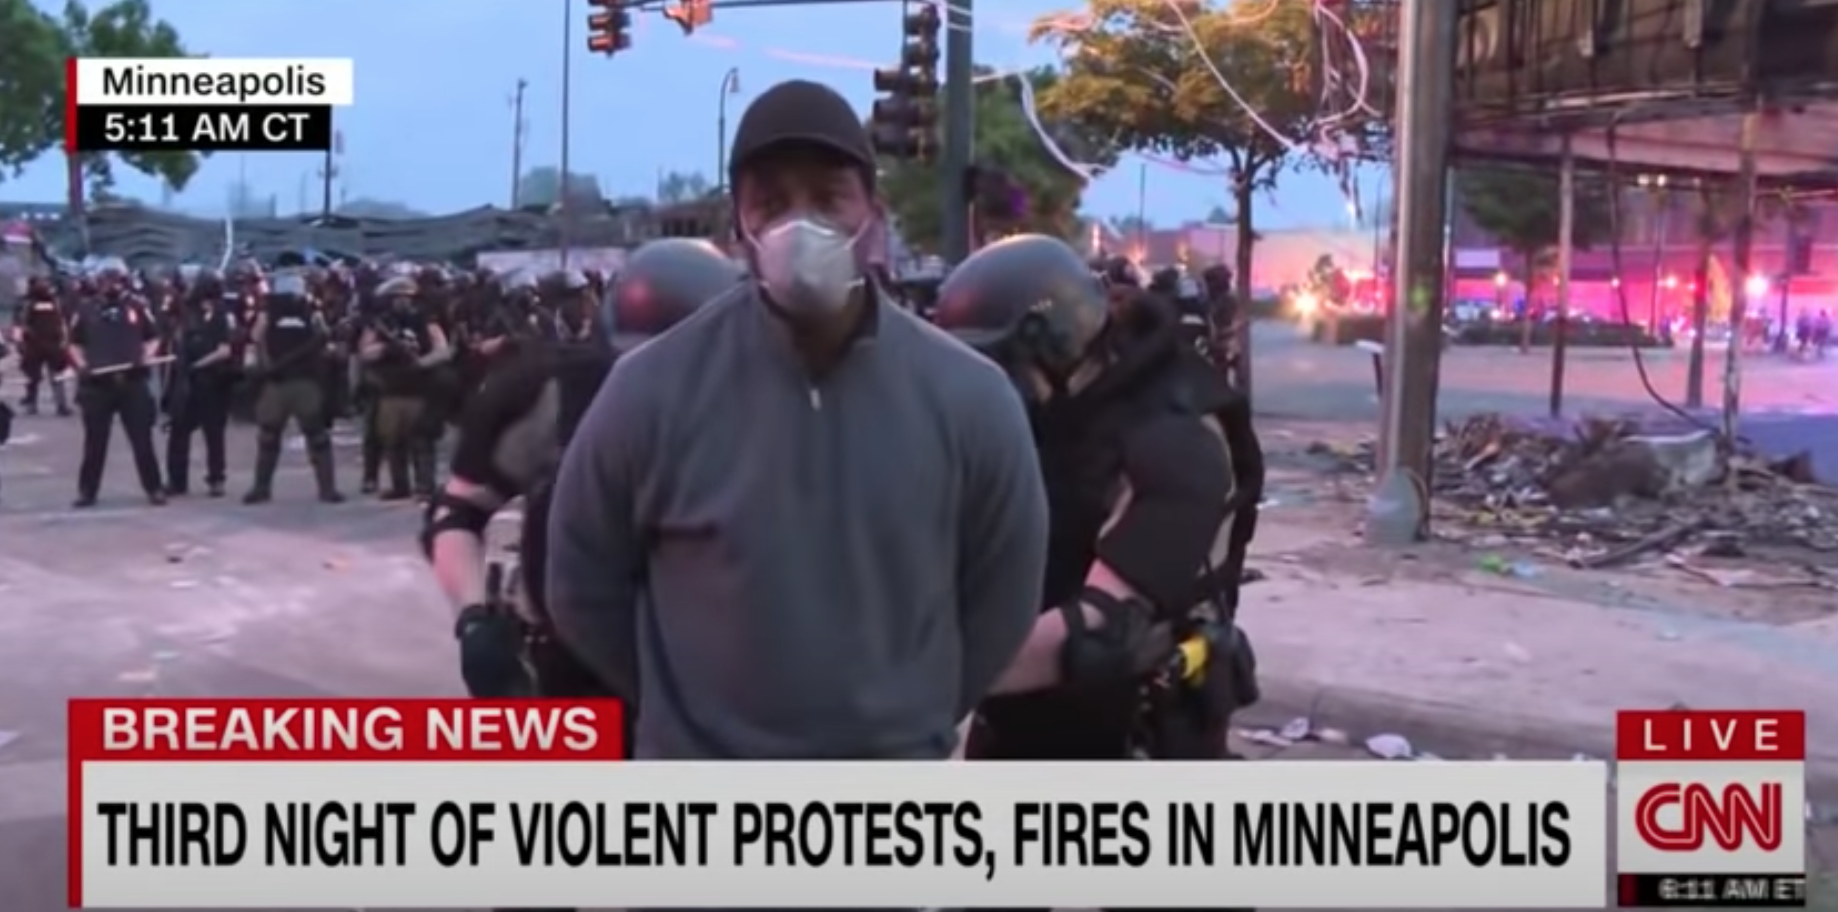 CNN Correspondent Omar Jimenez Arrested During Live Report on Minneapolis Protests